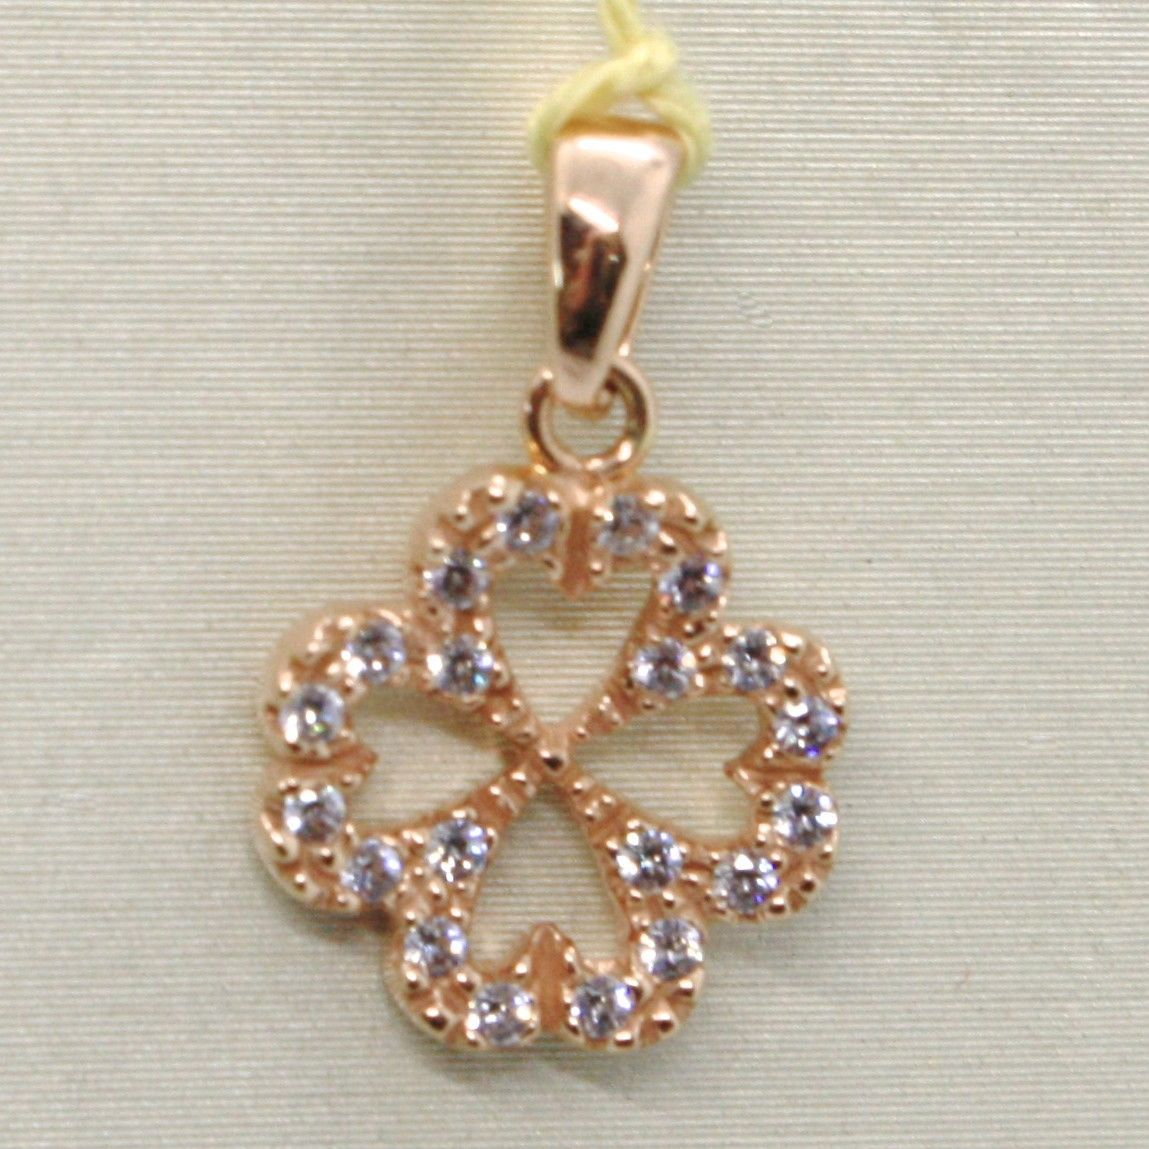 18K ROSE GOLD LUCKY FOUR LEAF PENDANT CHARM CUBIC ZIRCONIA BRIGHT, MADE IN ITALY